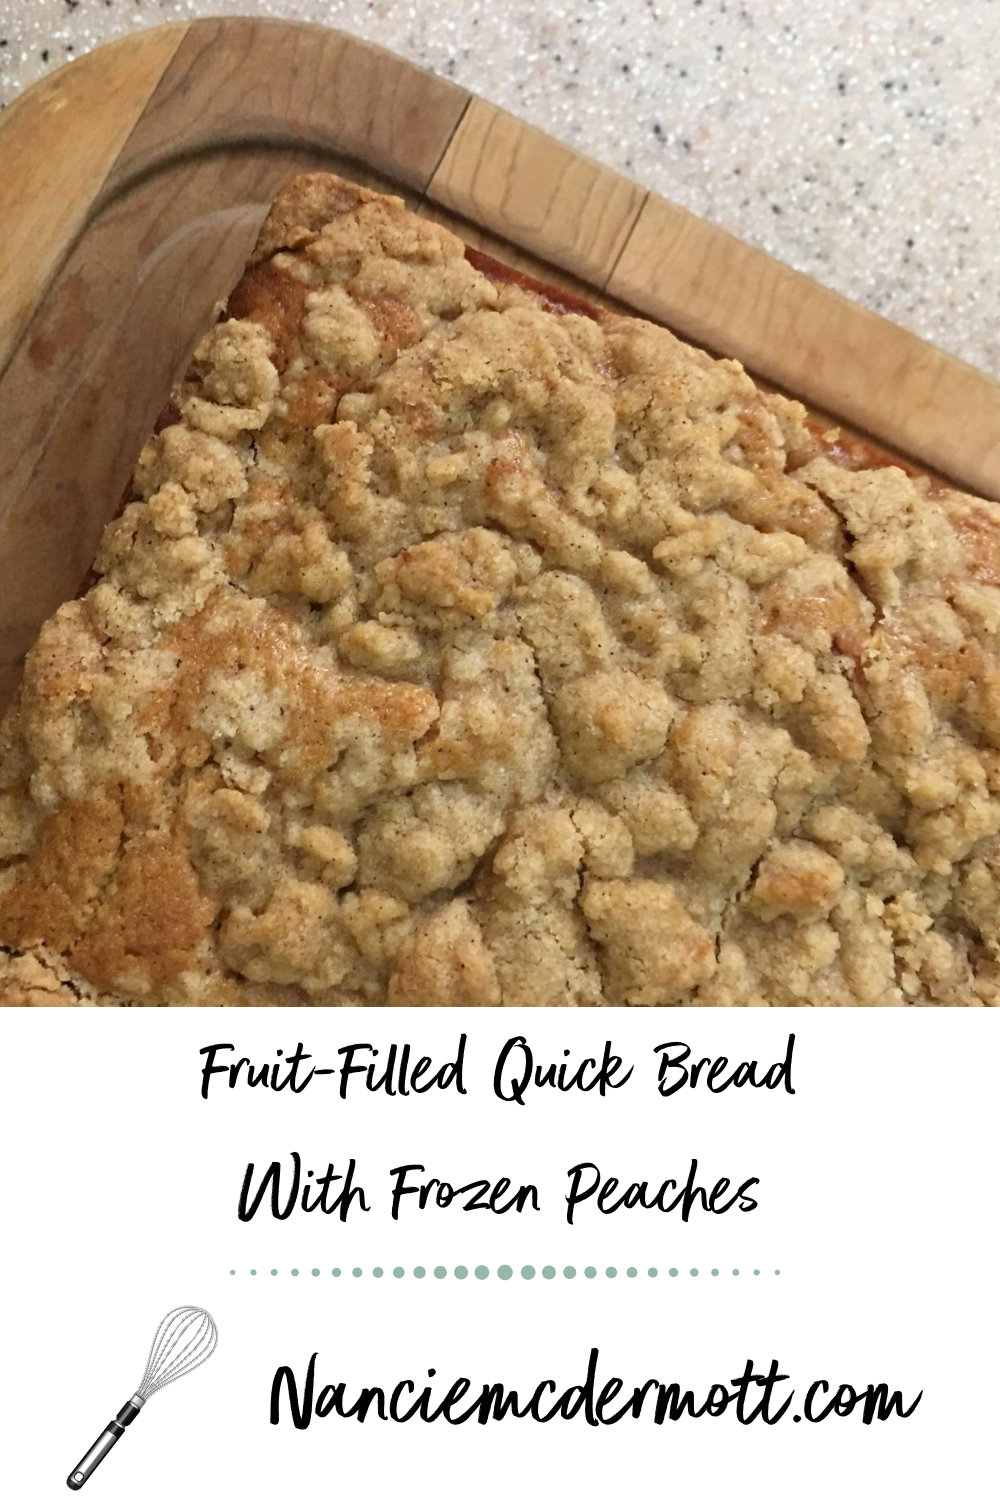 Fruit-Filled Quick Bread with Frozen Peaches